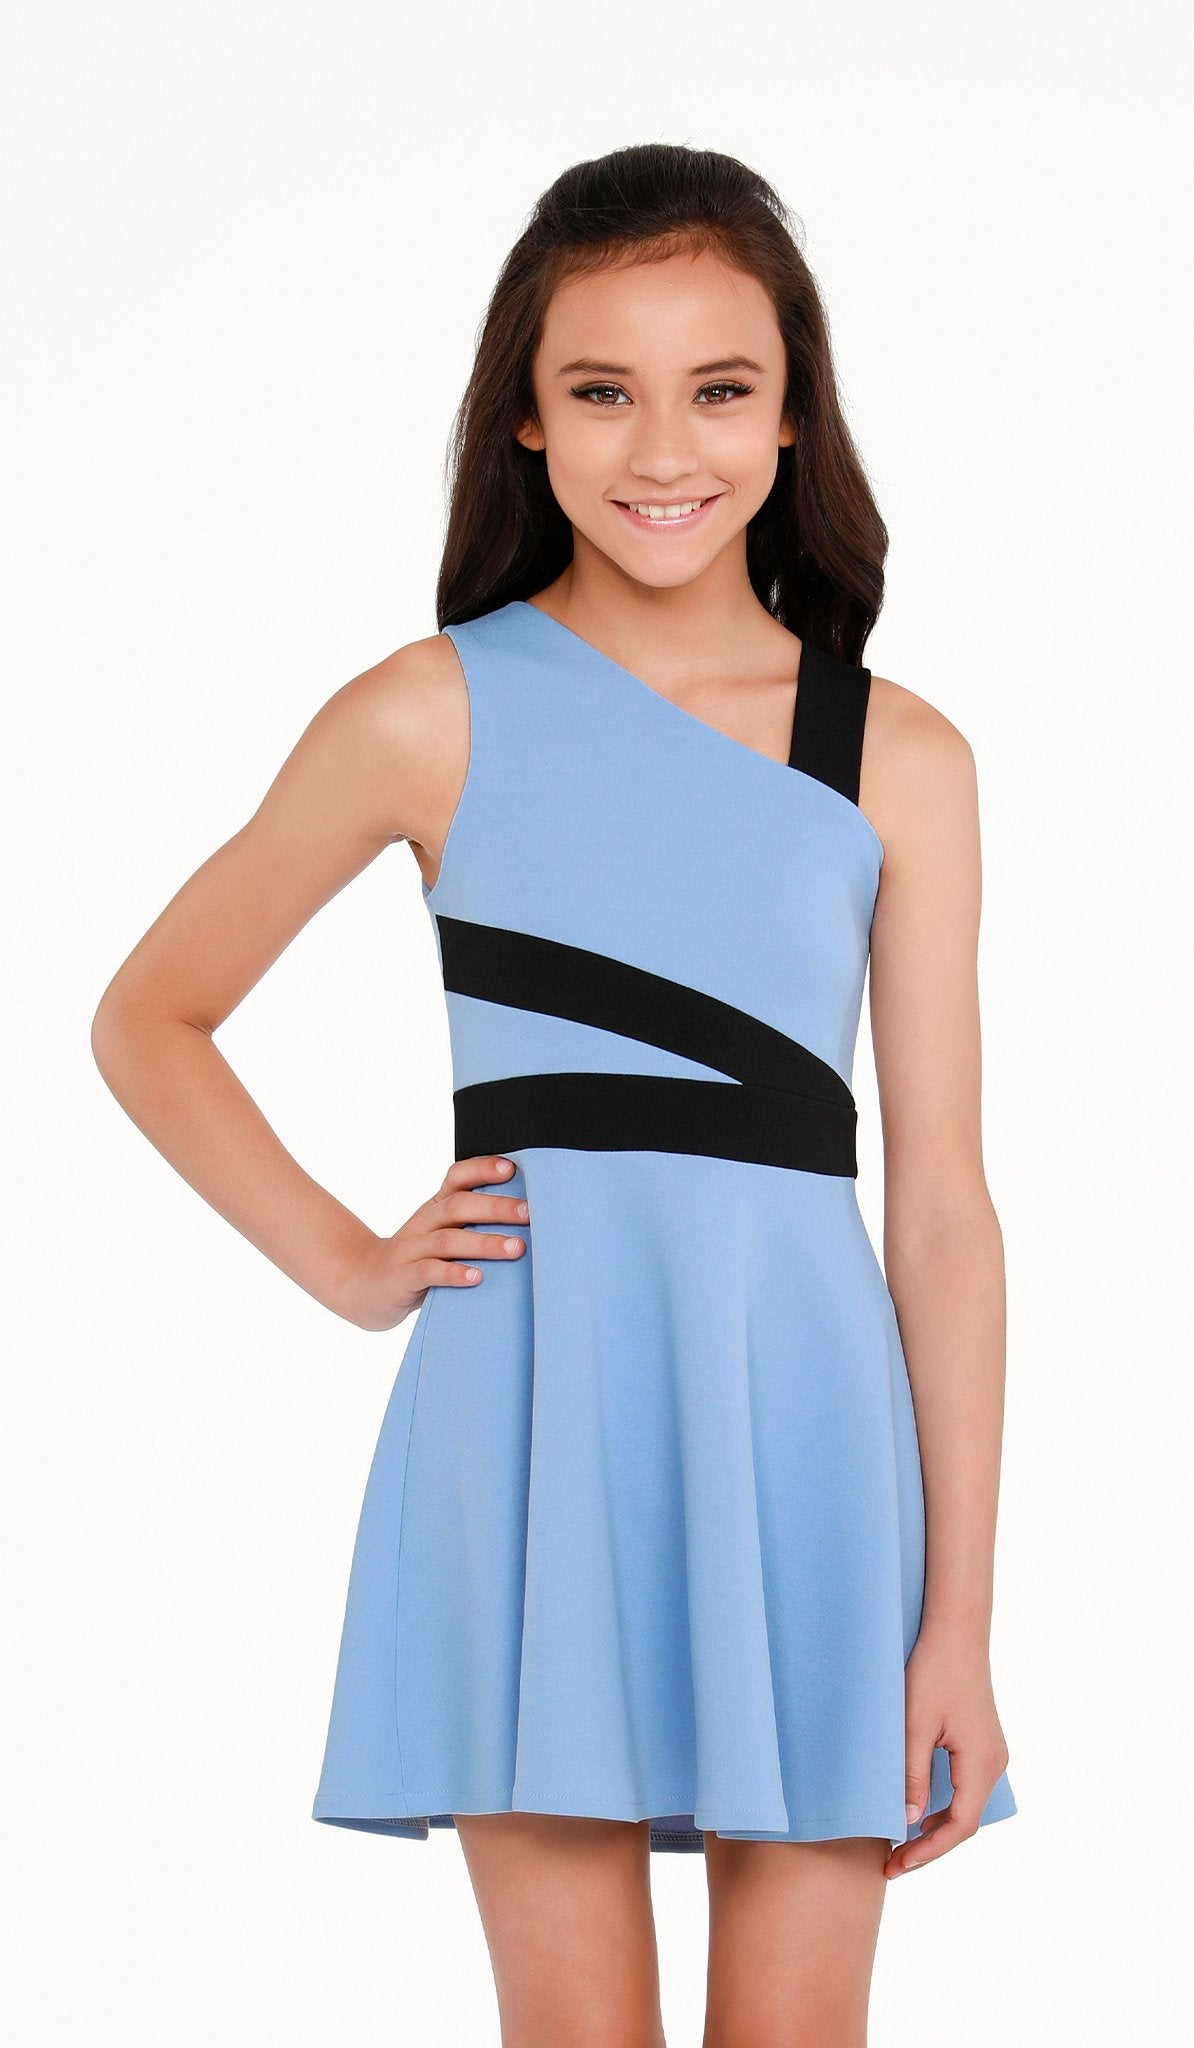 Sally Miller Blaire Dress Blue stretch textured knit fit and flare dress with black trim detail | Event & Party Dresses for Tween Girls & Juniors | Weddings Dresses, Bat Mitzvah Dresses, Sweet Sixteen Dresses, Graduation Dresses, Birthday Party Dresses, Bar Mitzvah Dresses, Cotillion Dresses